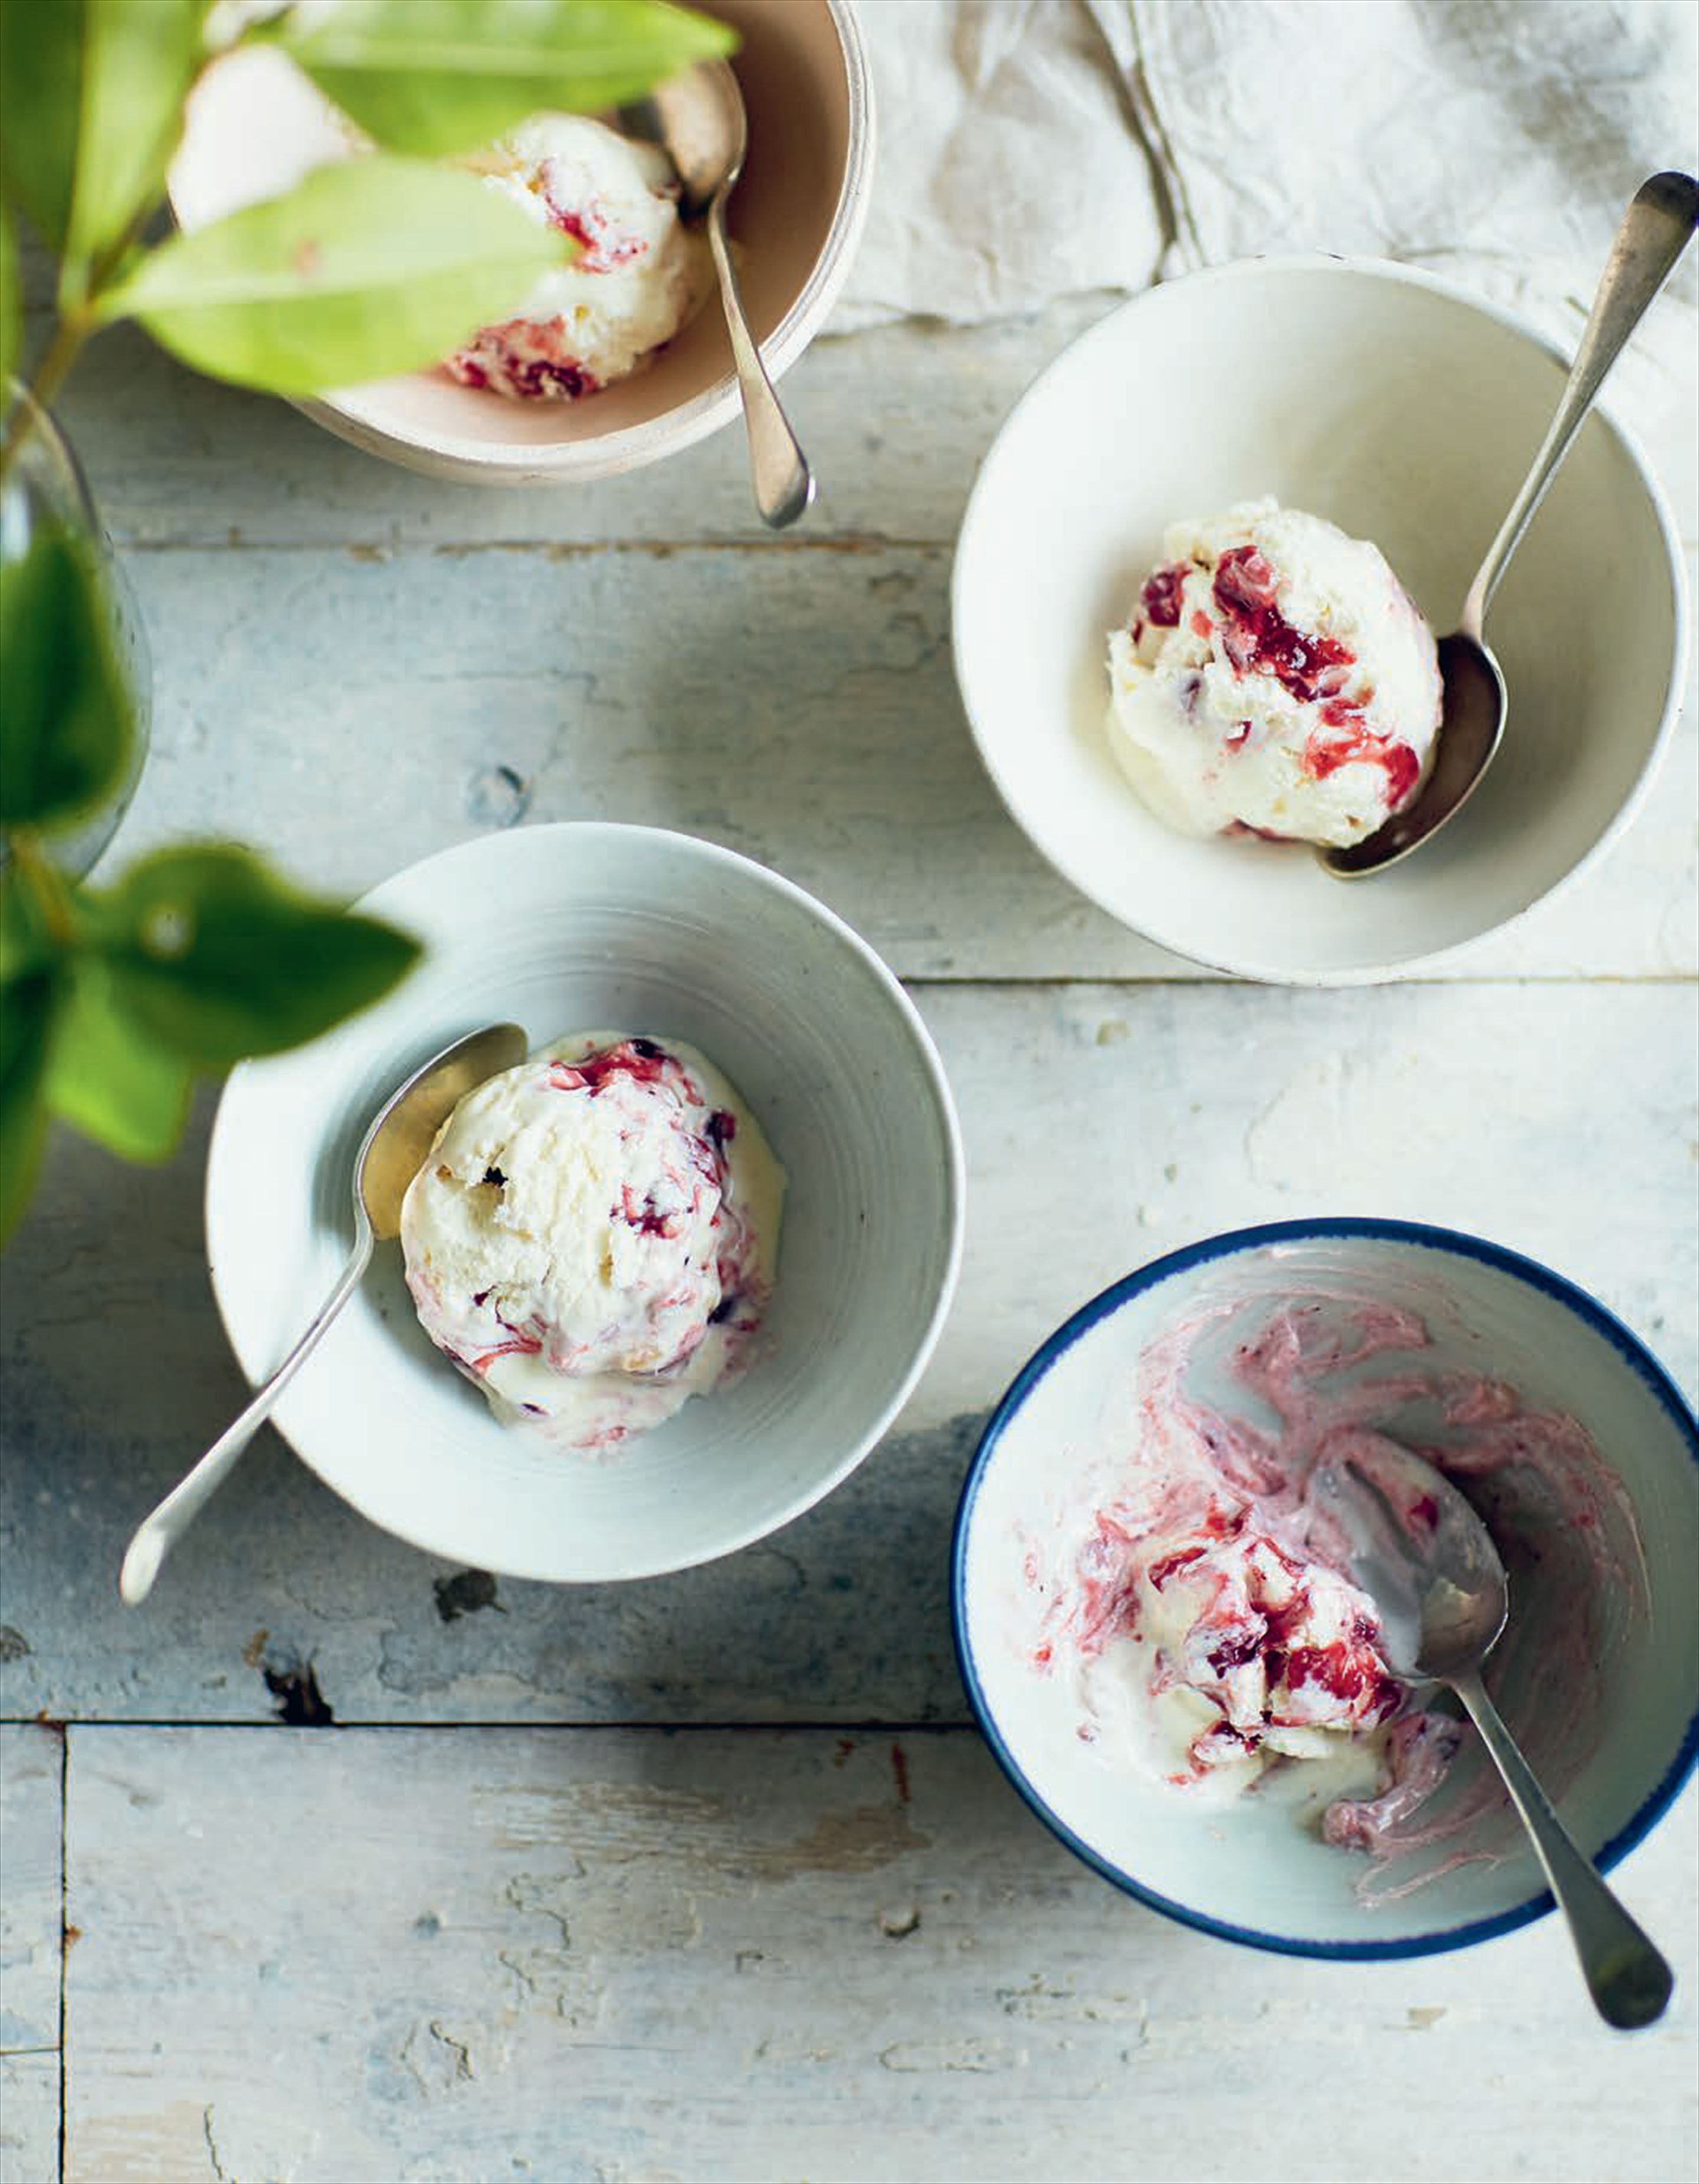 Ginger ice cream with lingonberry jam